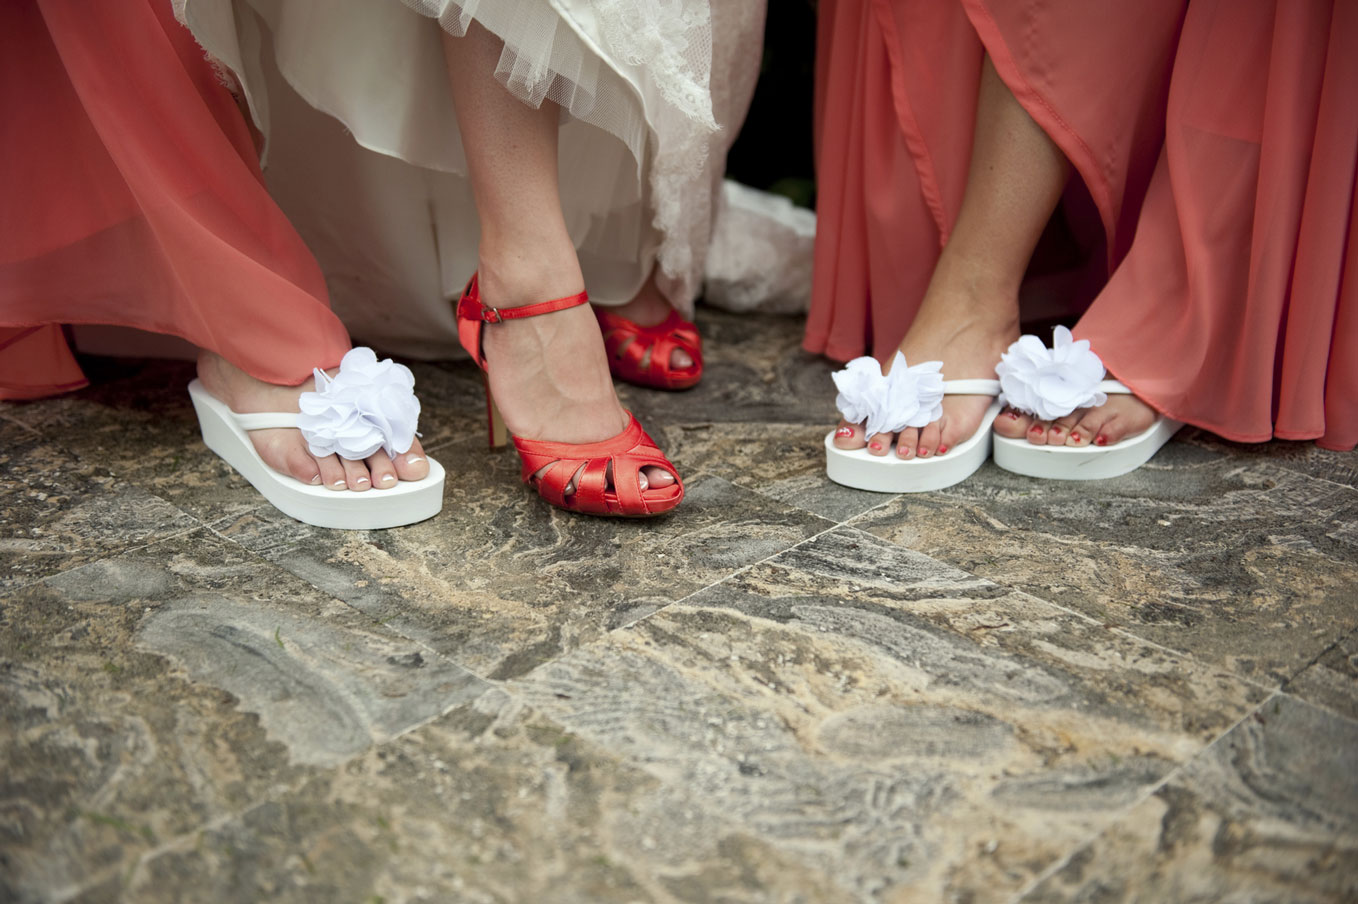 bride-and-bridesmaid-showing-off-shoes-000013697769_medium